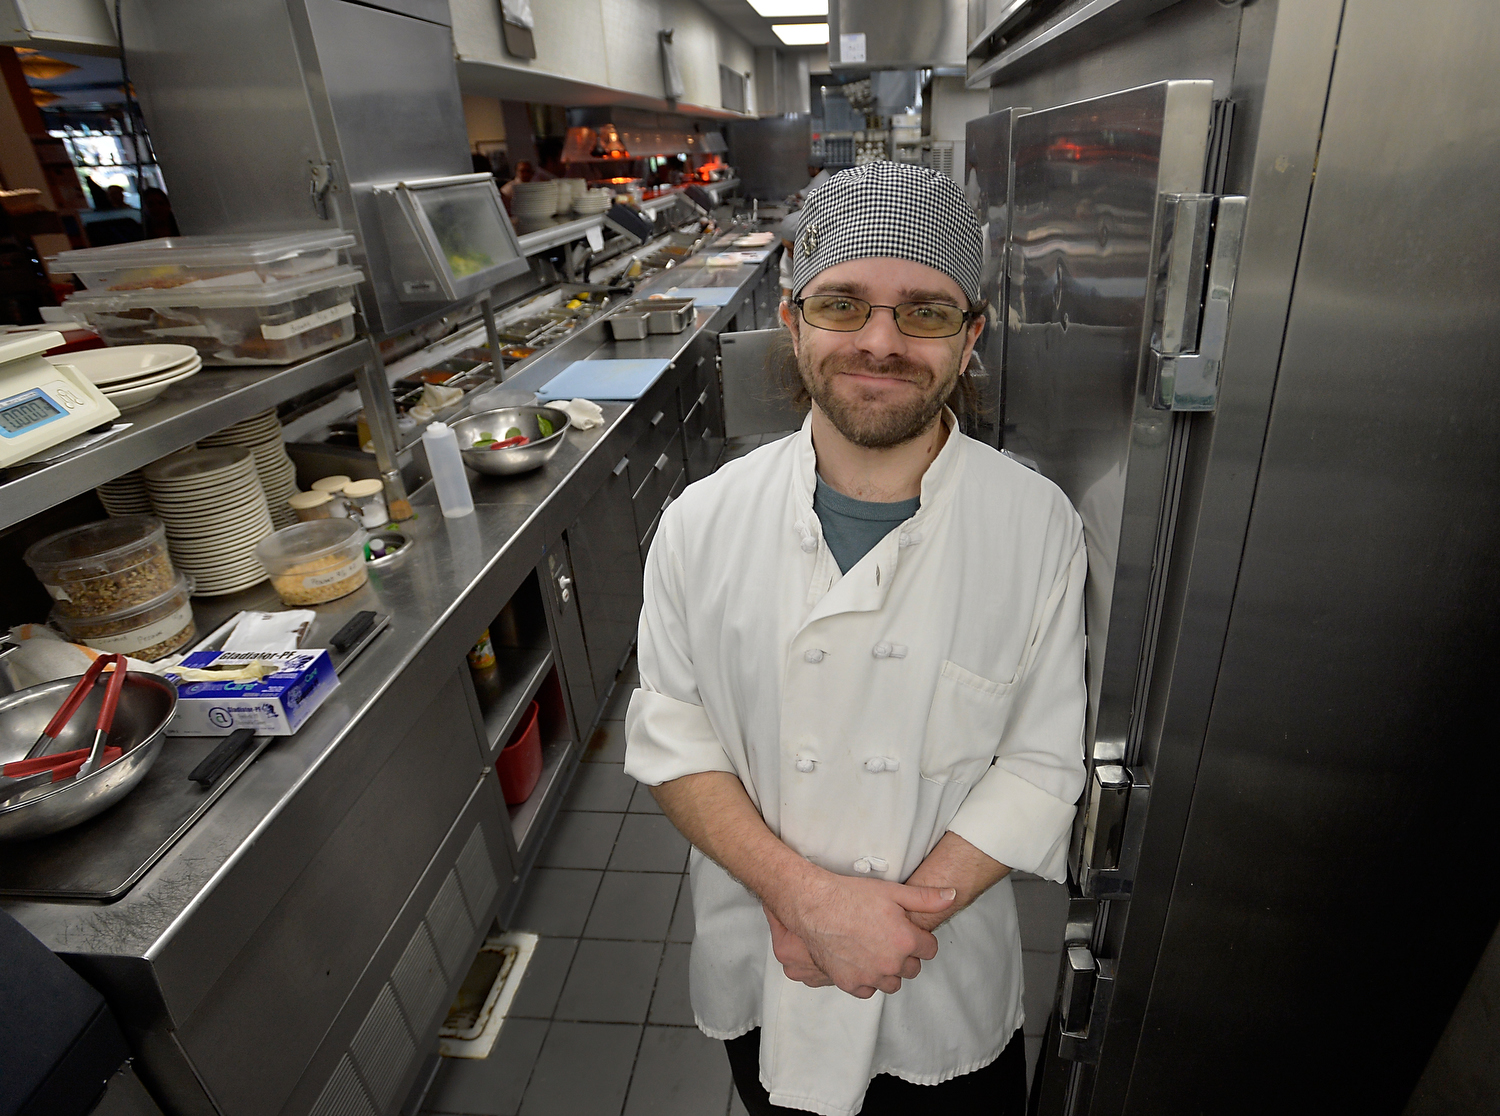 Garrick Knight, 27 of Cary, N.C., is a prep-cook at Local 32 in Cary, N.C. on Thursday, December 15, 2016. Knight is a graduate of the Inter-faith Food Shuttle's culinary school. (Photo by Sara D. Davis)